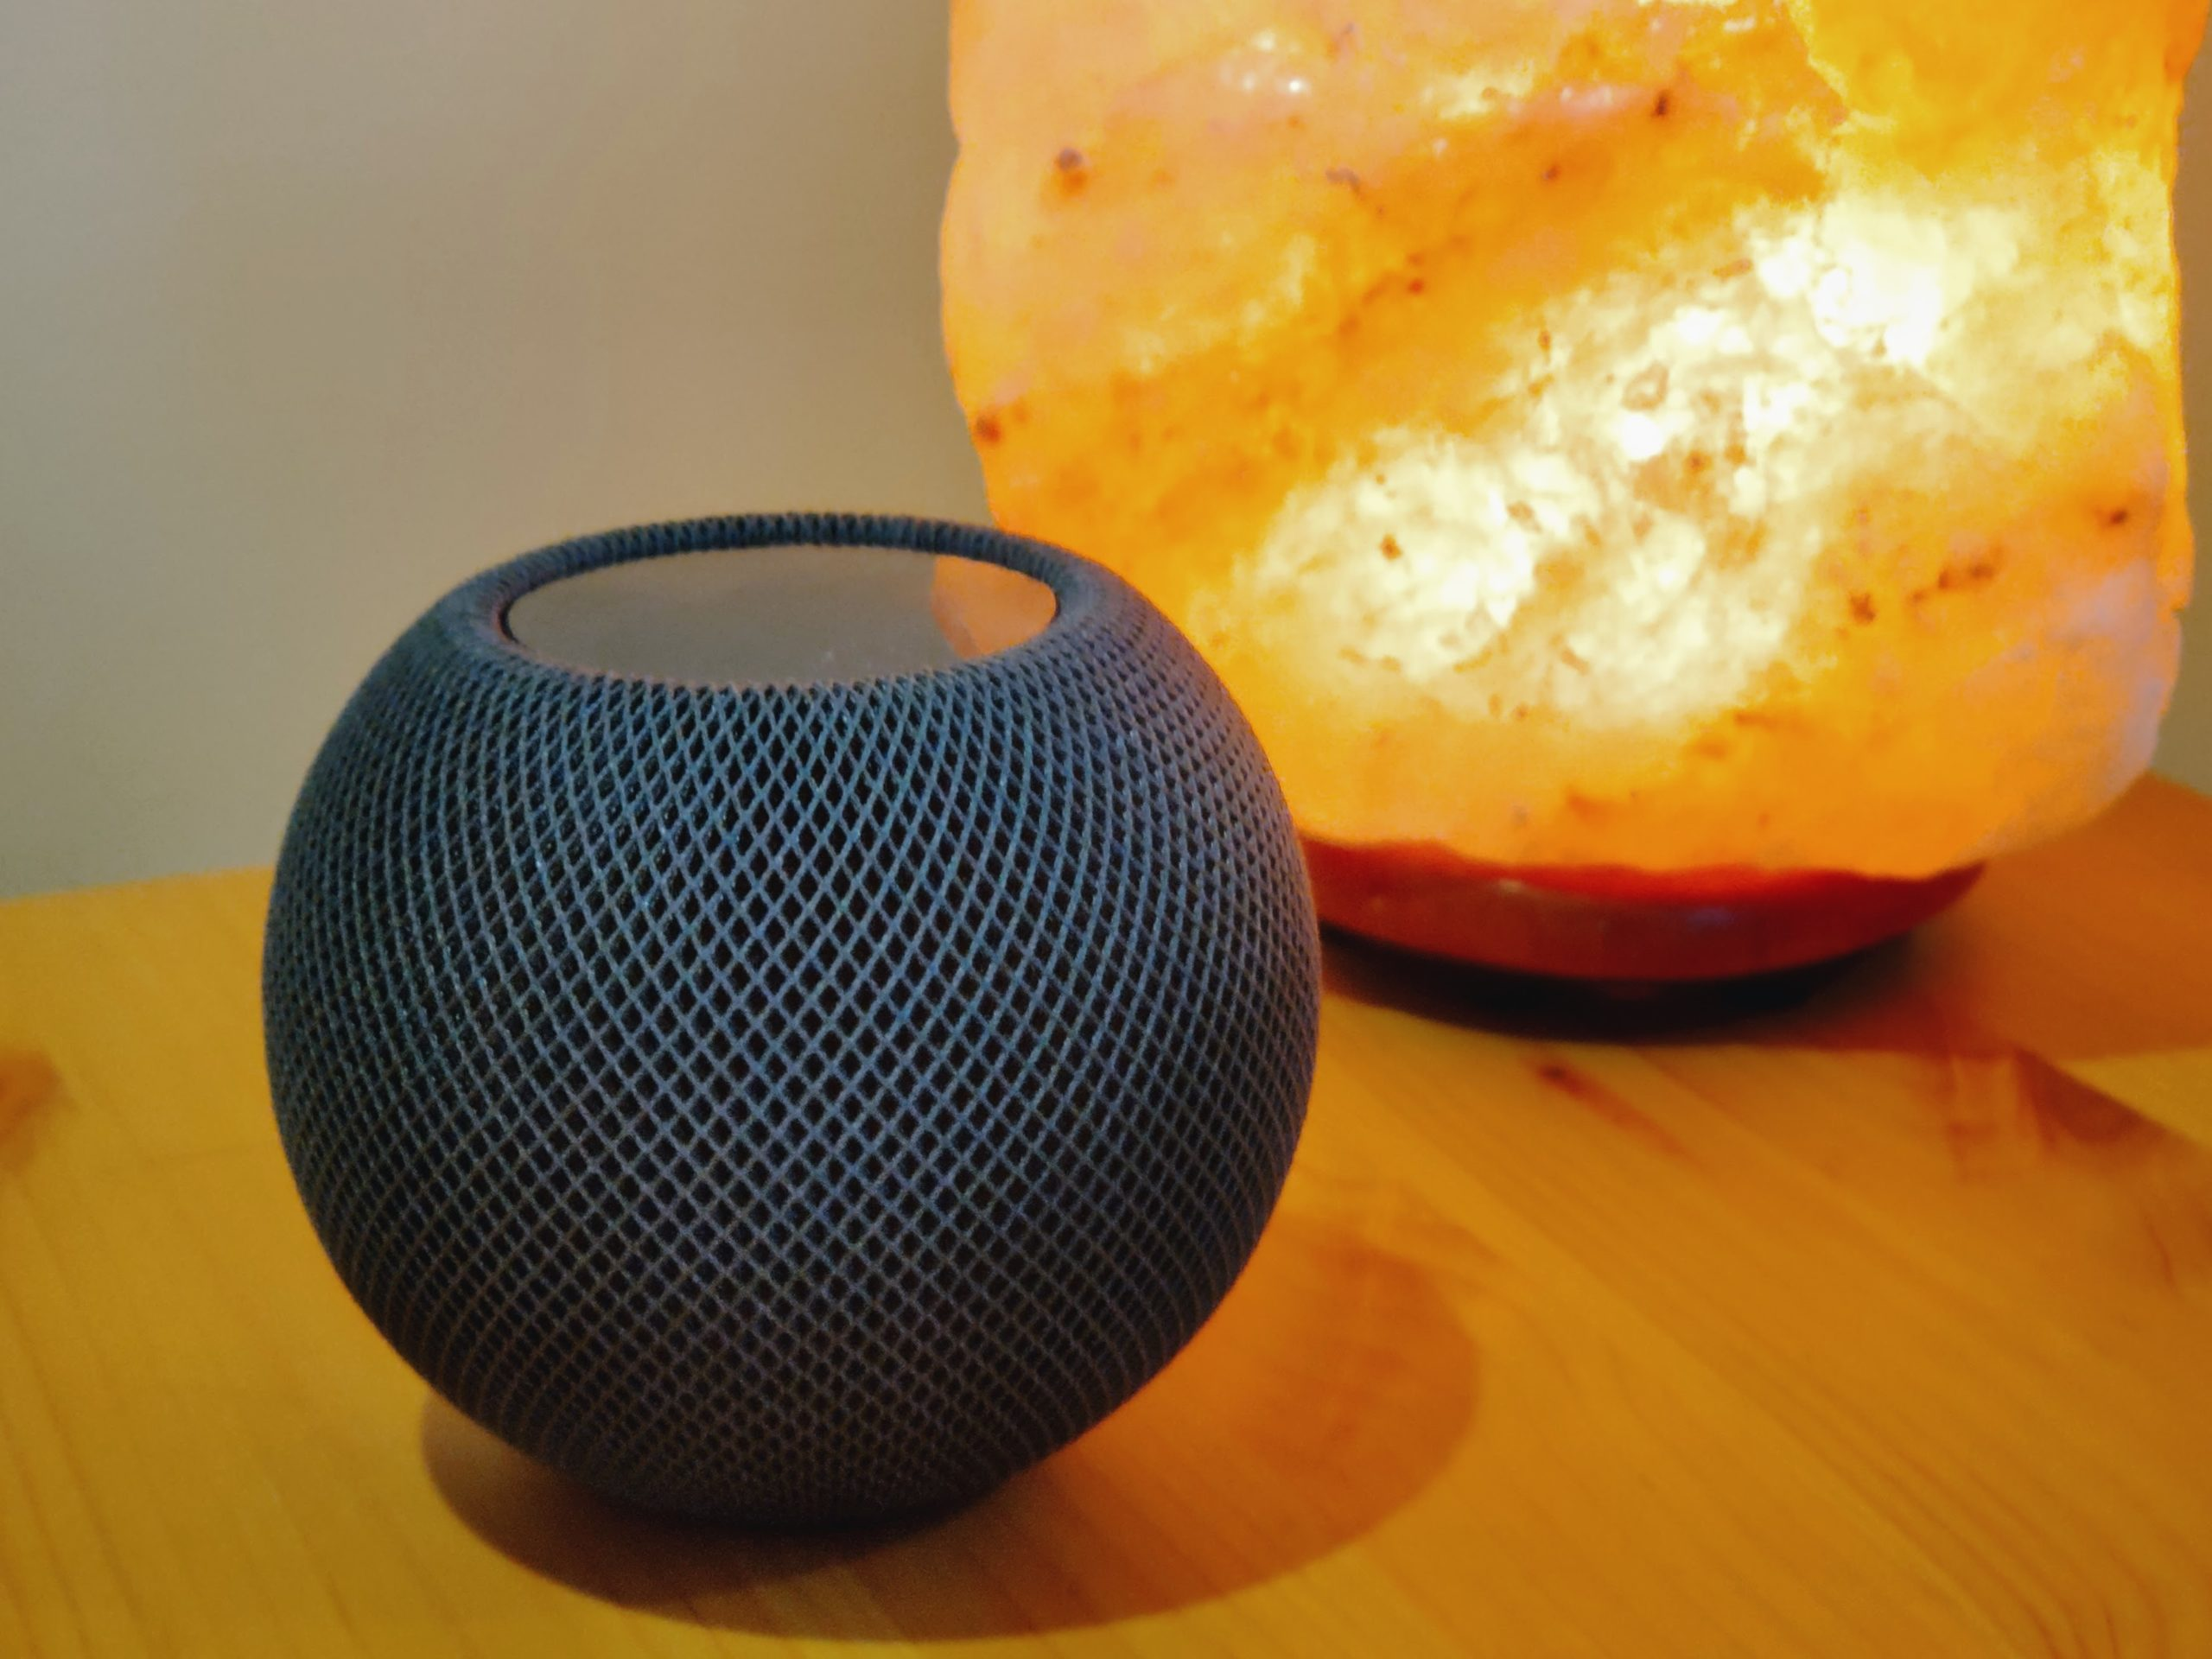 Apple ramps up HomePod mini production in Vietnam